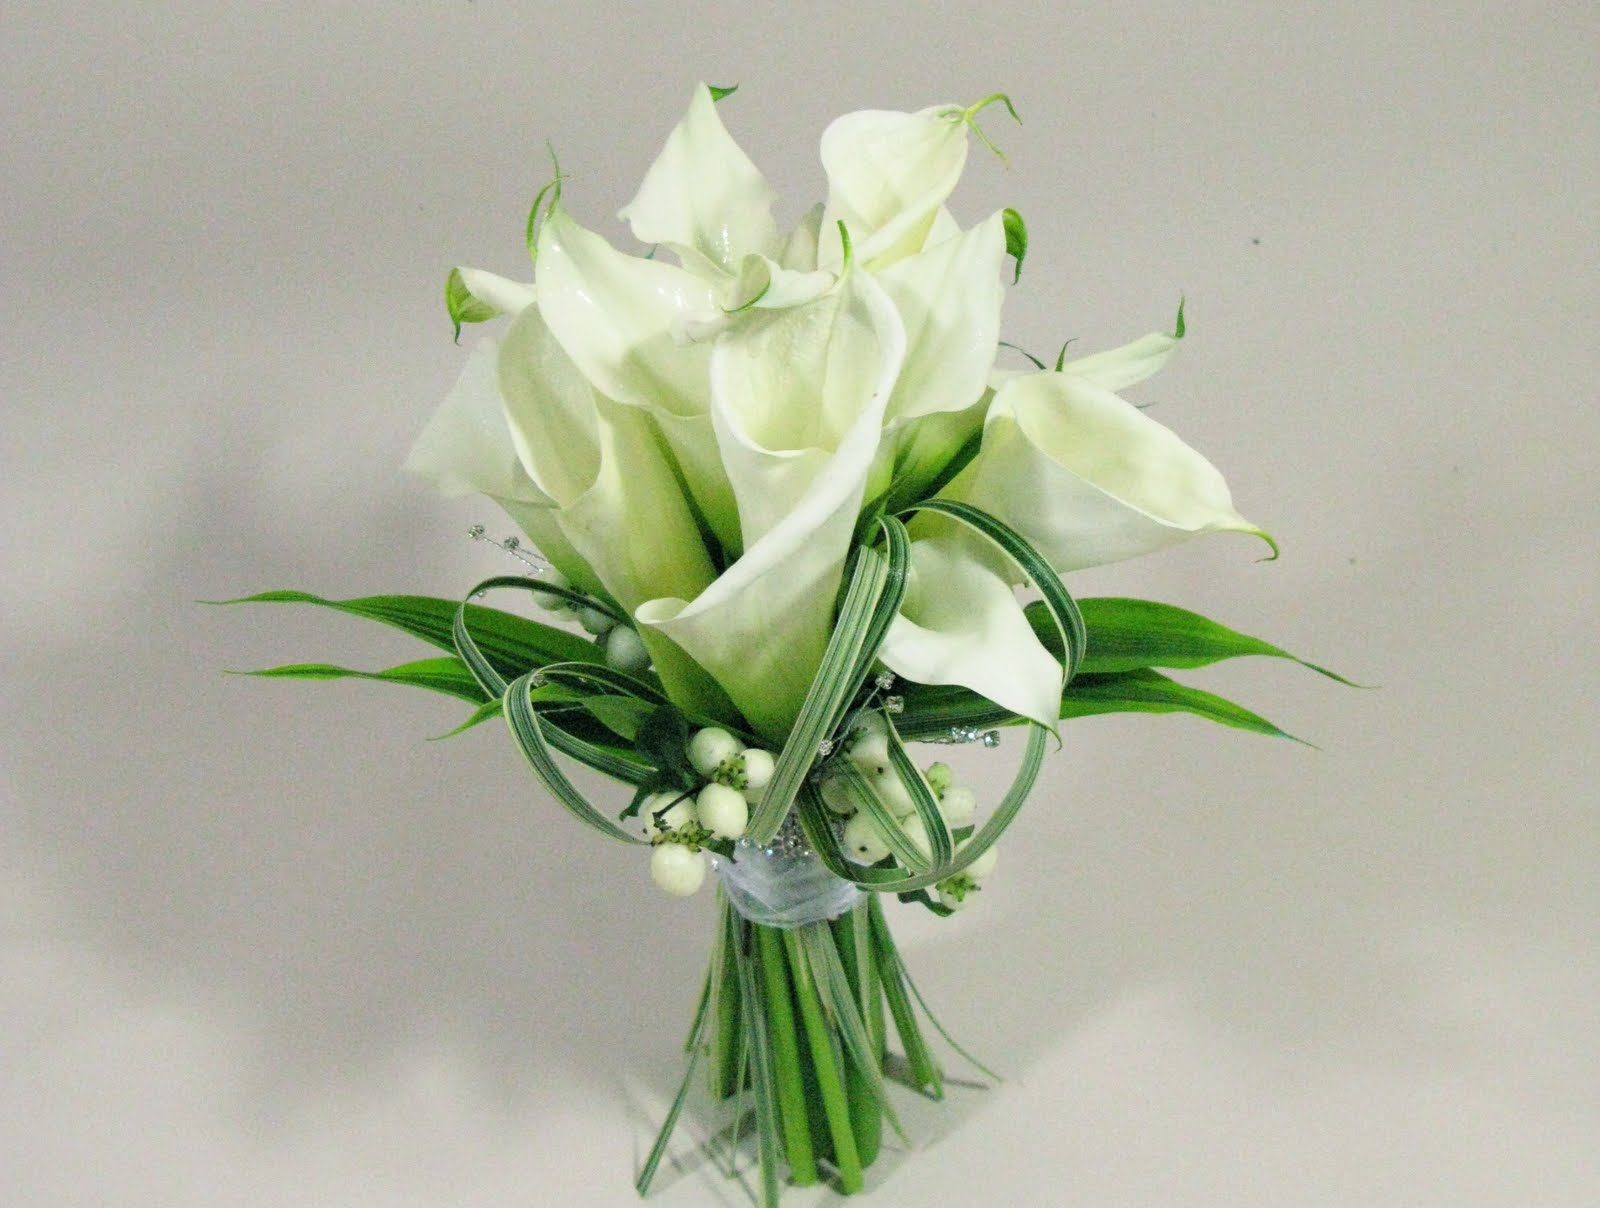 Hills florist bridal bouquets - Flowers good luck bridal bouquet ...